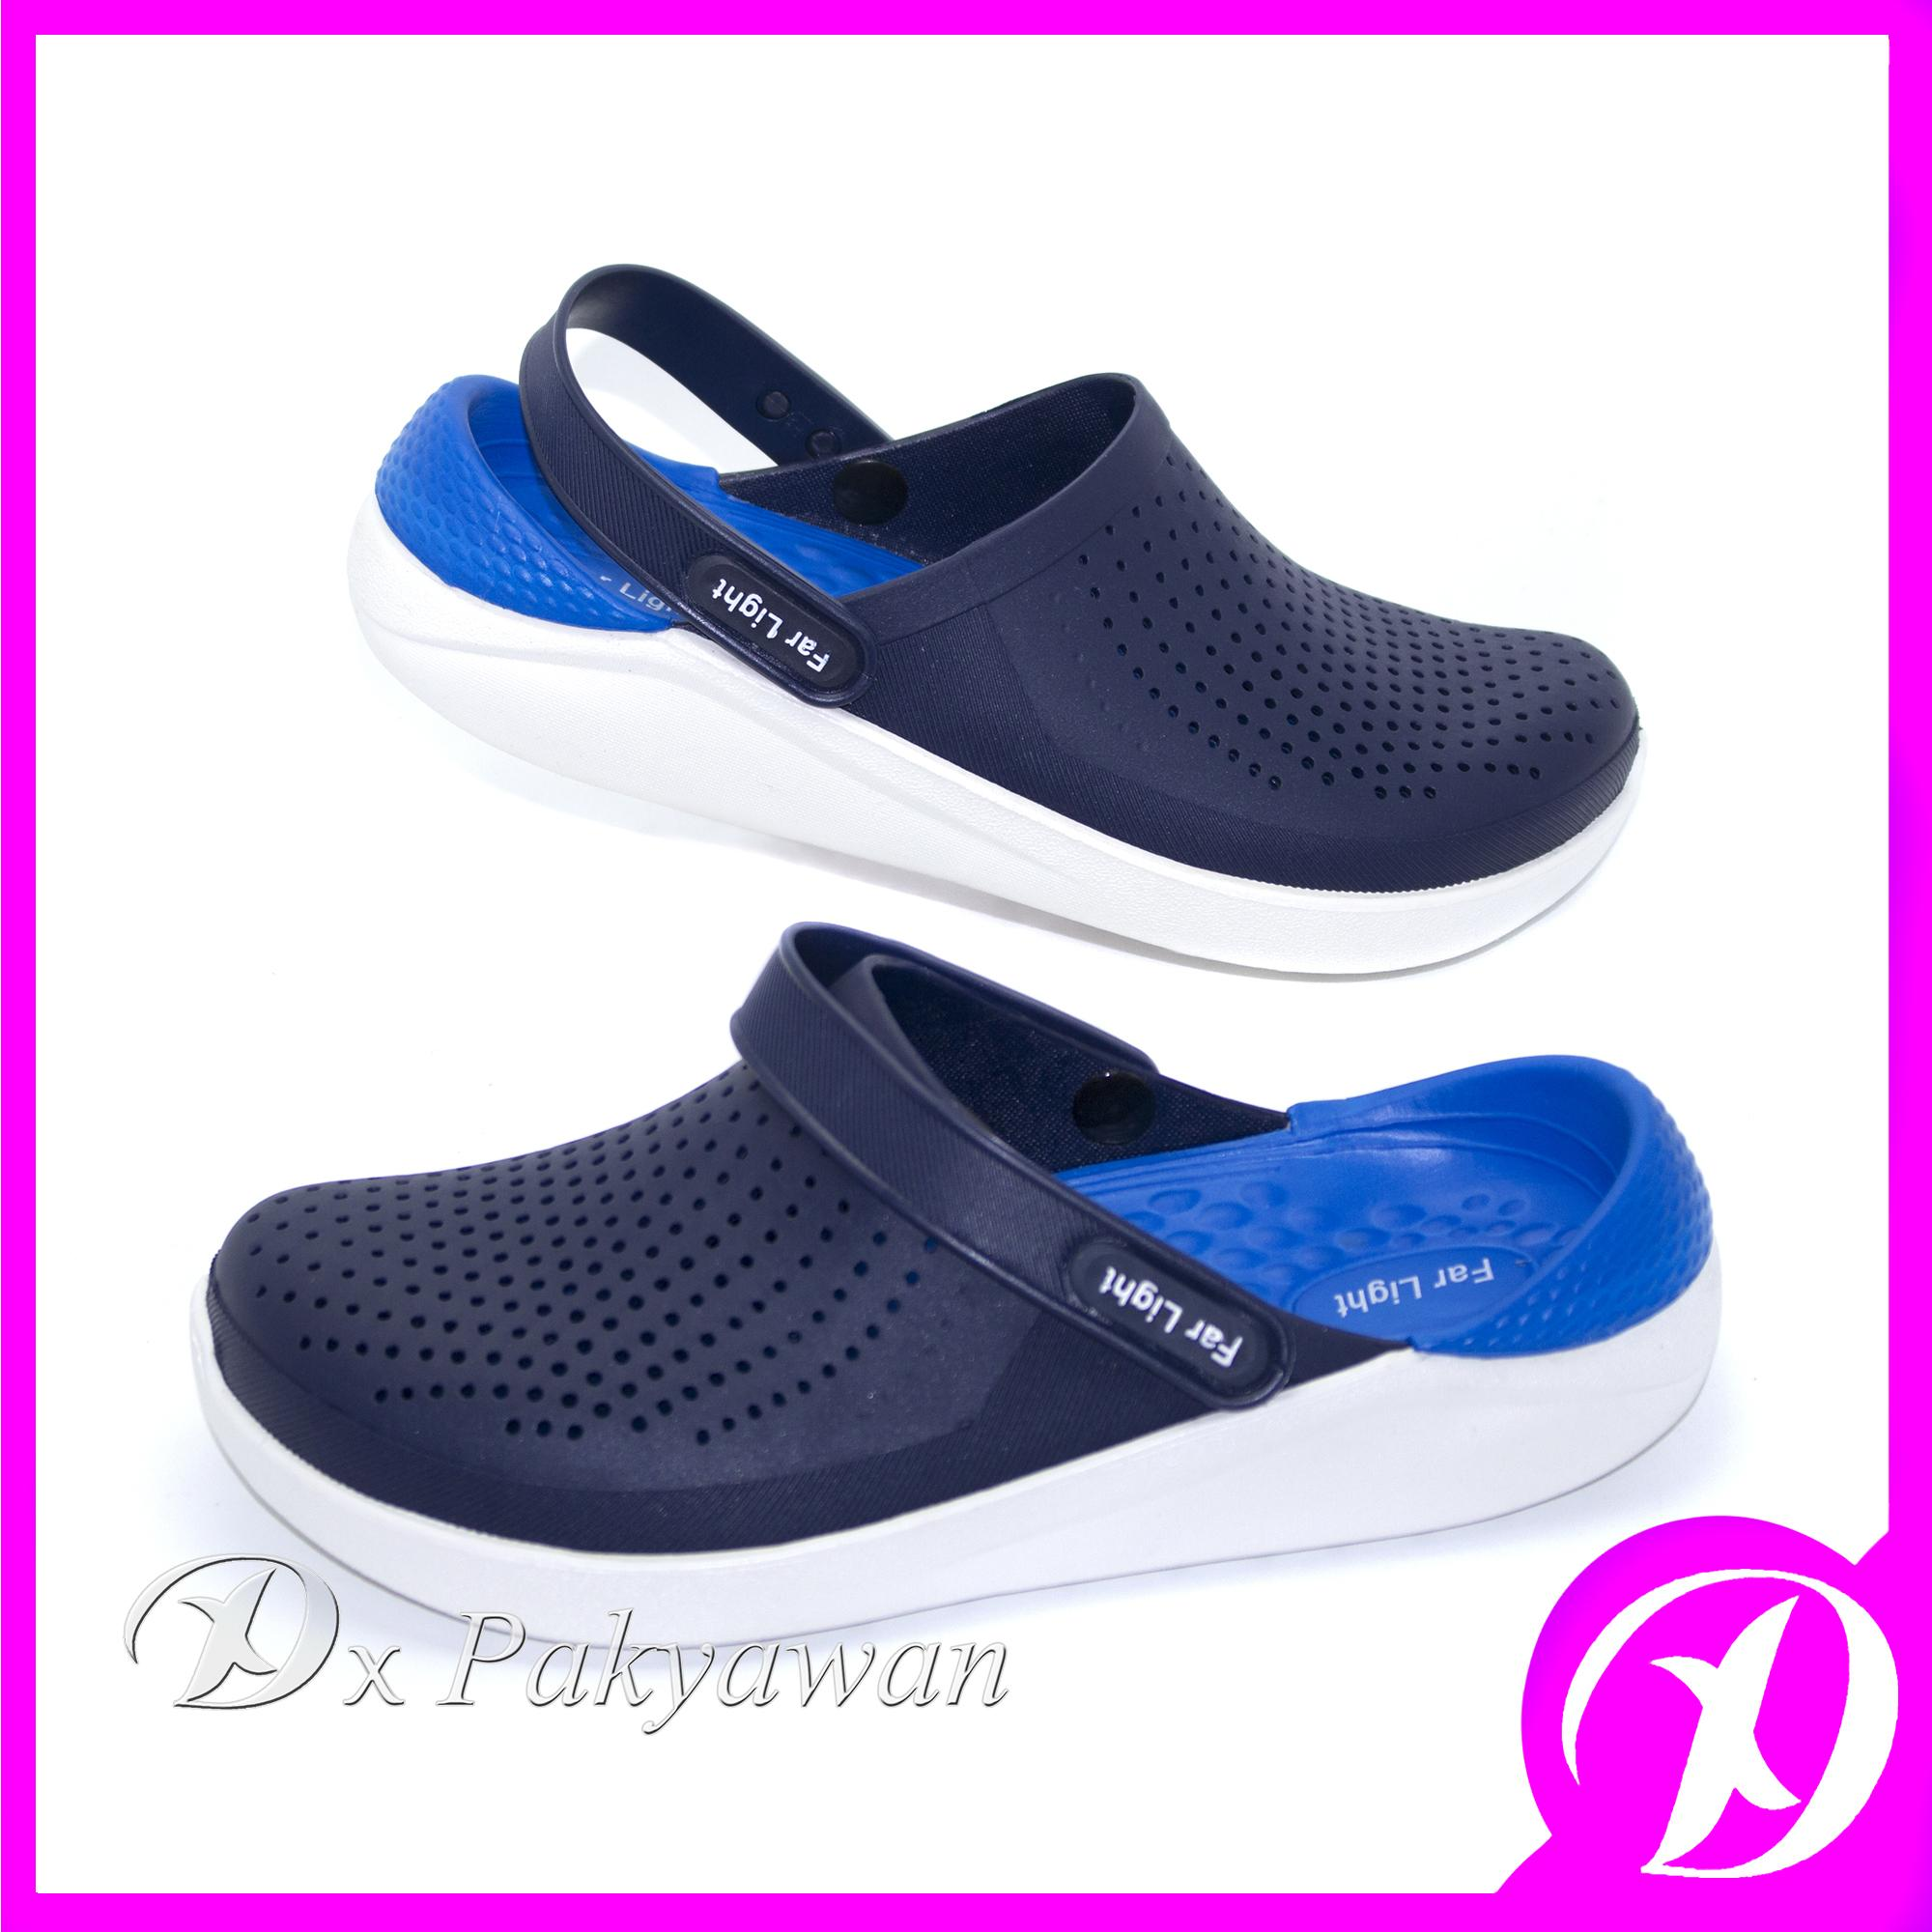 Dx Summer Sandals Men Casual Shoes Mules Clogs Croc Breathable Beach Slippers Male Water Hollow Jelly Shoes Kasut Lelaki Sandal By Dx Pakyawan.